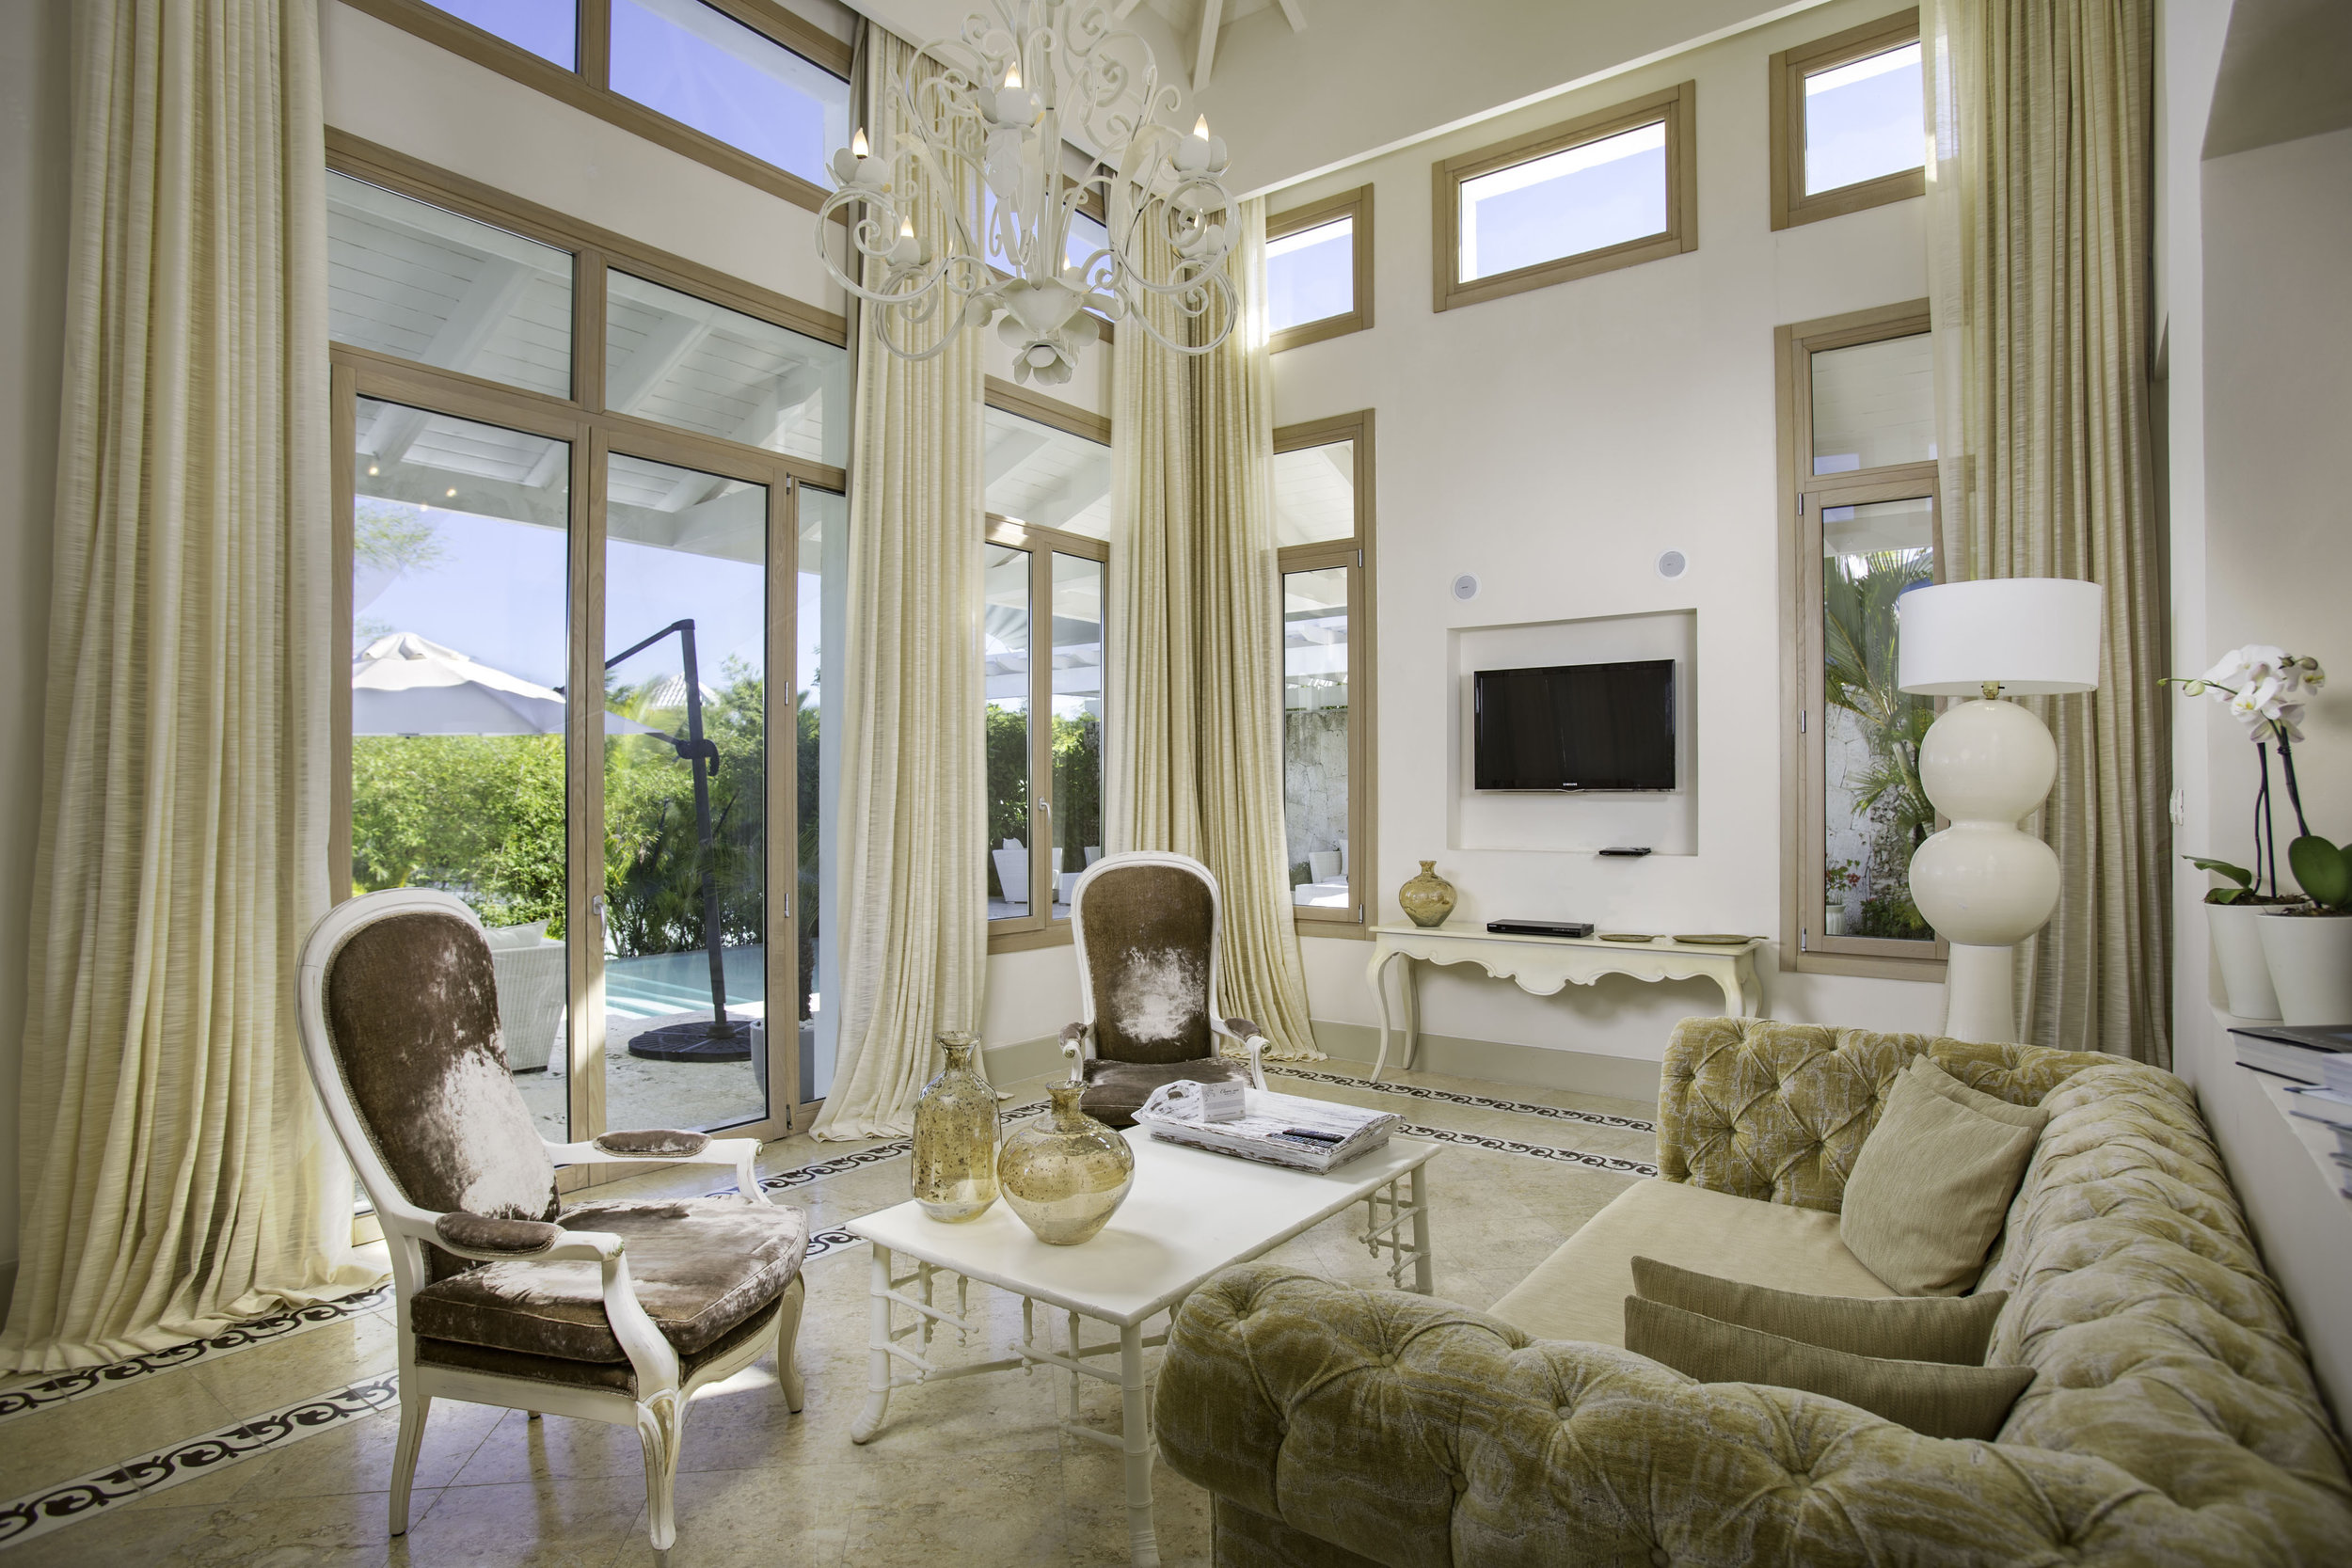 4 Bedroom Imperial Villa_Living Room_1048.jpg